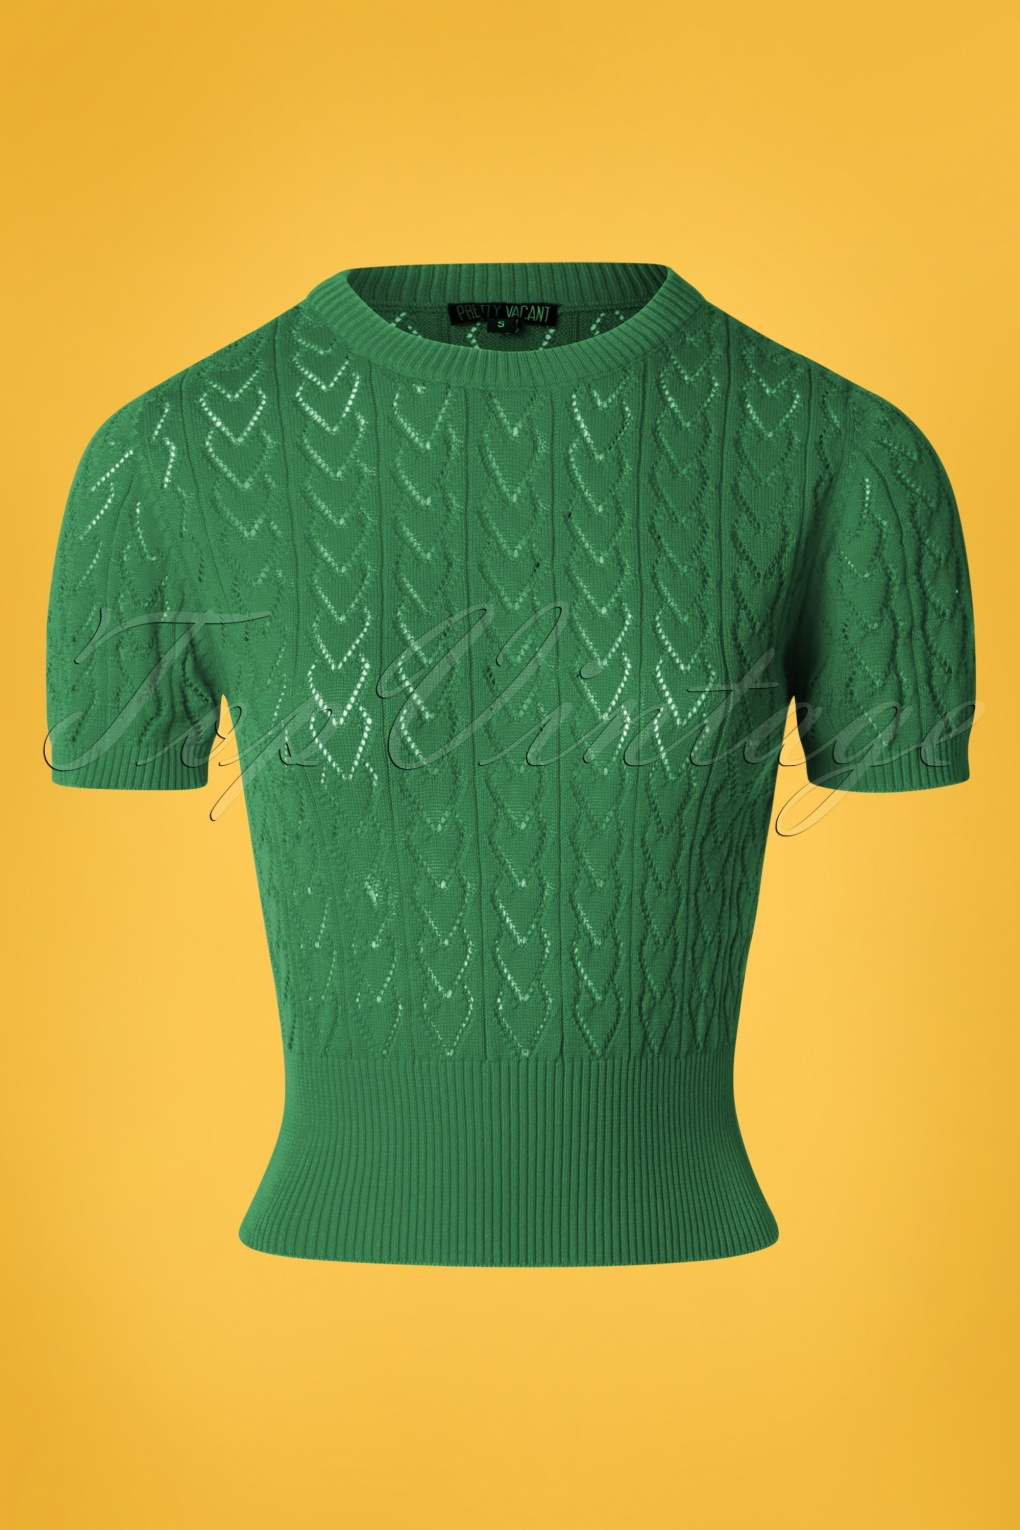 Vintage Sweaters: Cable Knit, Fair Isle Cardigans & Sweaters 60s Heart Crew Top in Green �49.90 AT vintagedancer.com